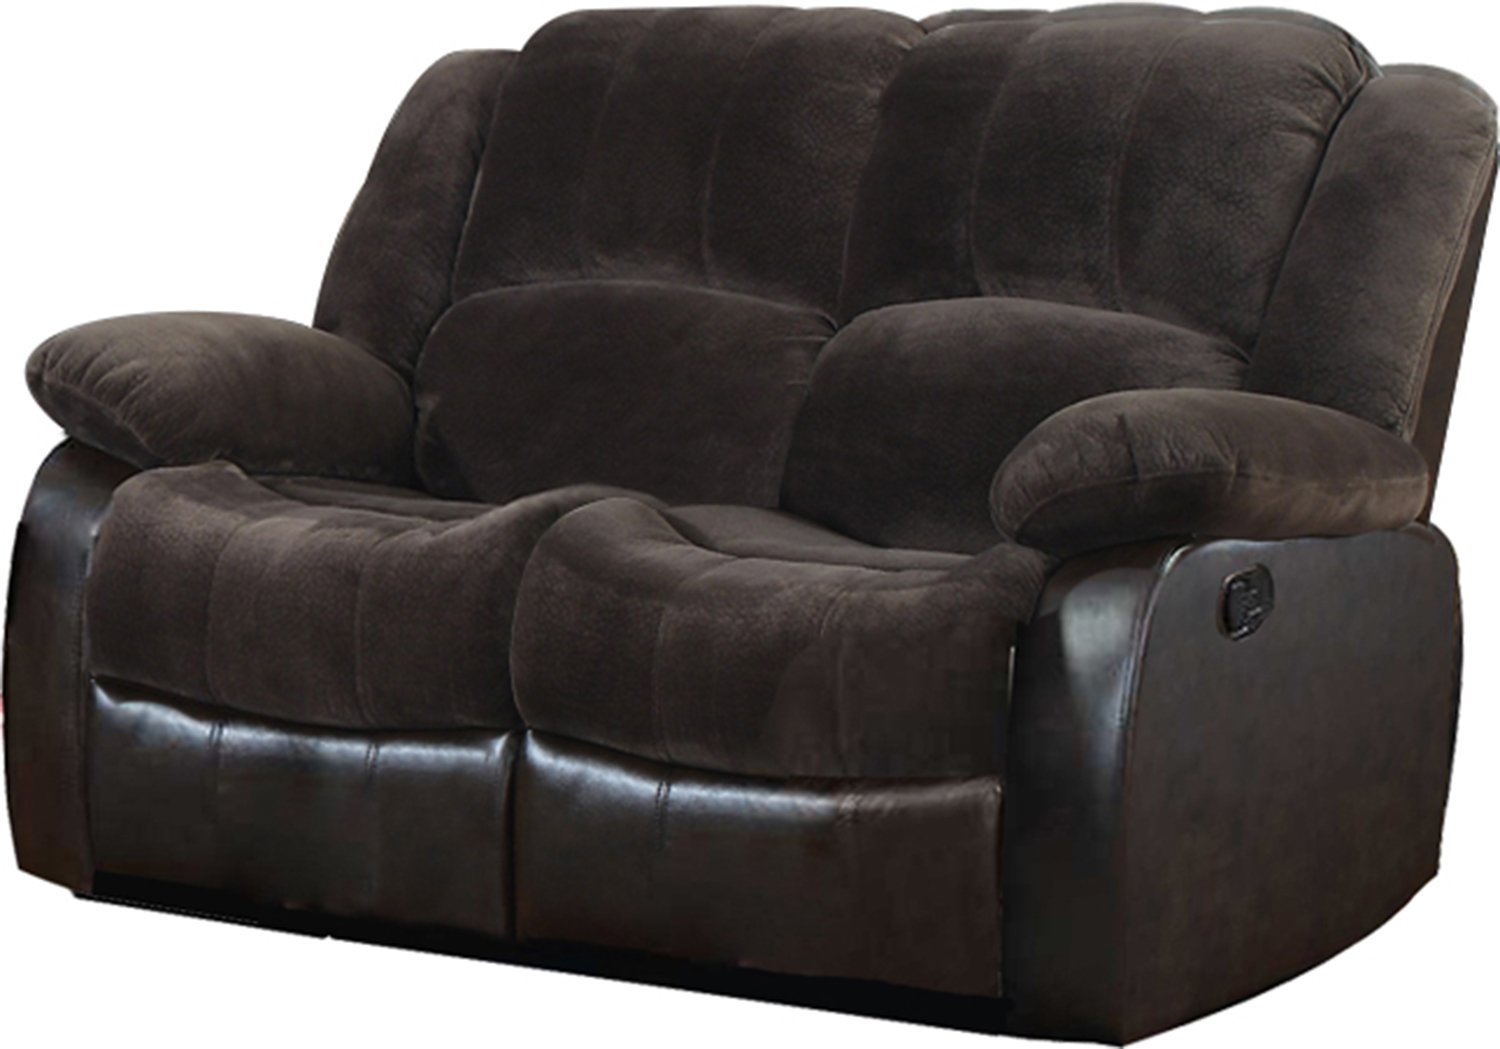 NHI Express Aiden Motion Loveseat (1 Pack), Peat